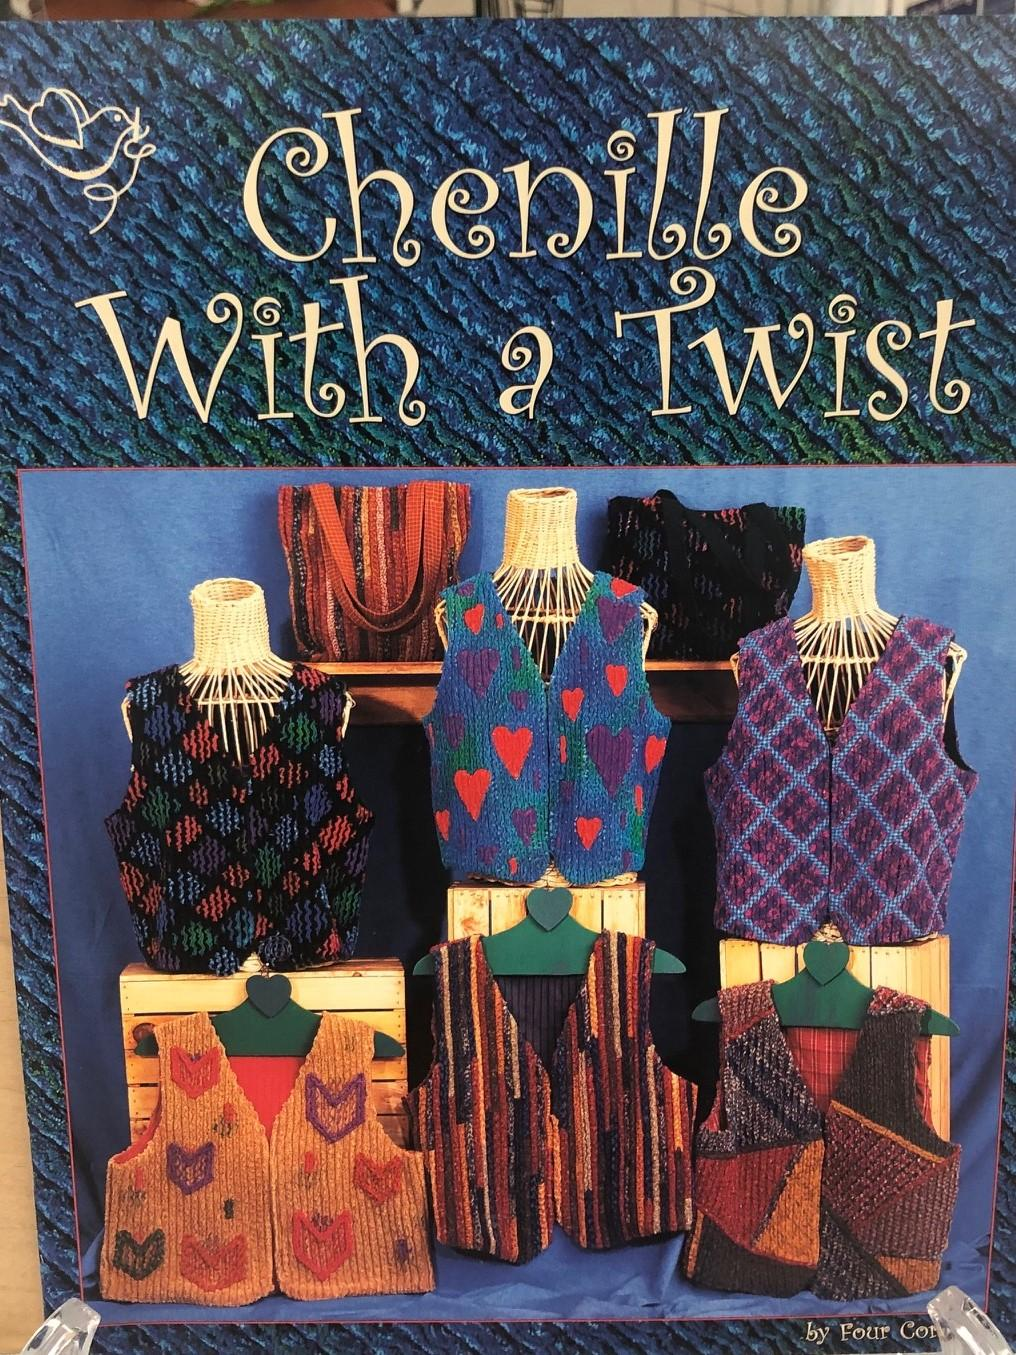 Chenille with a Twist